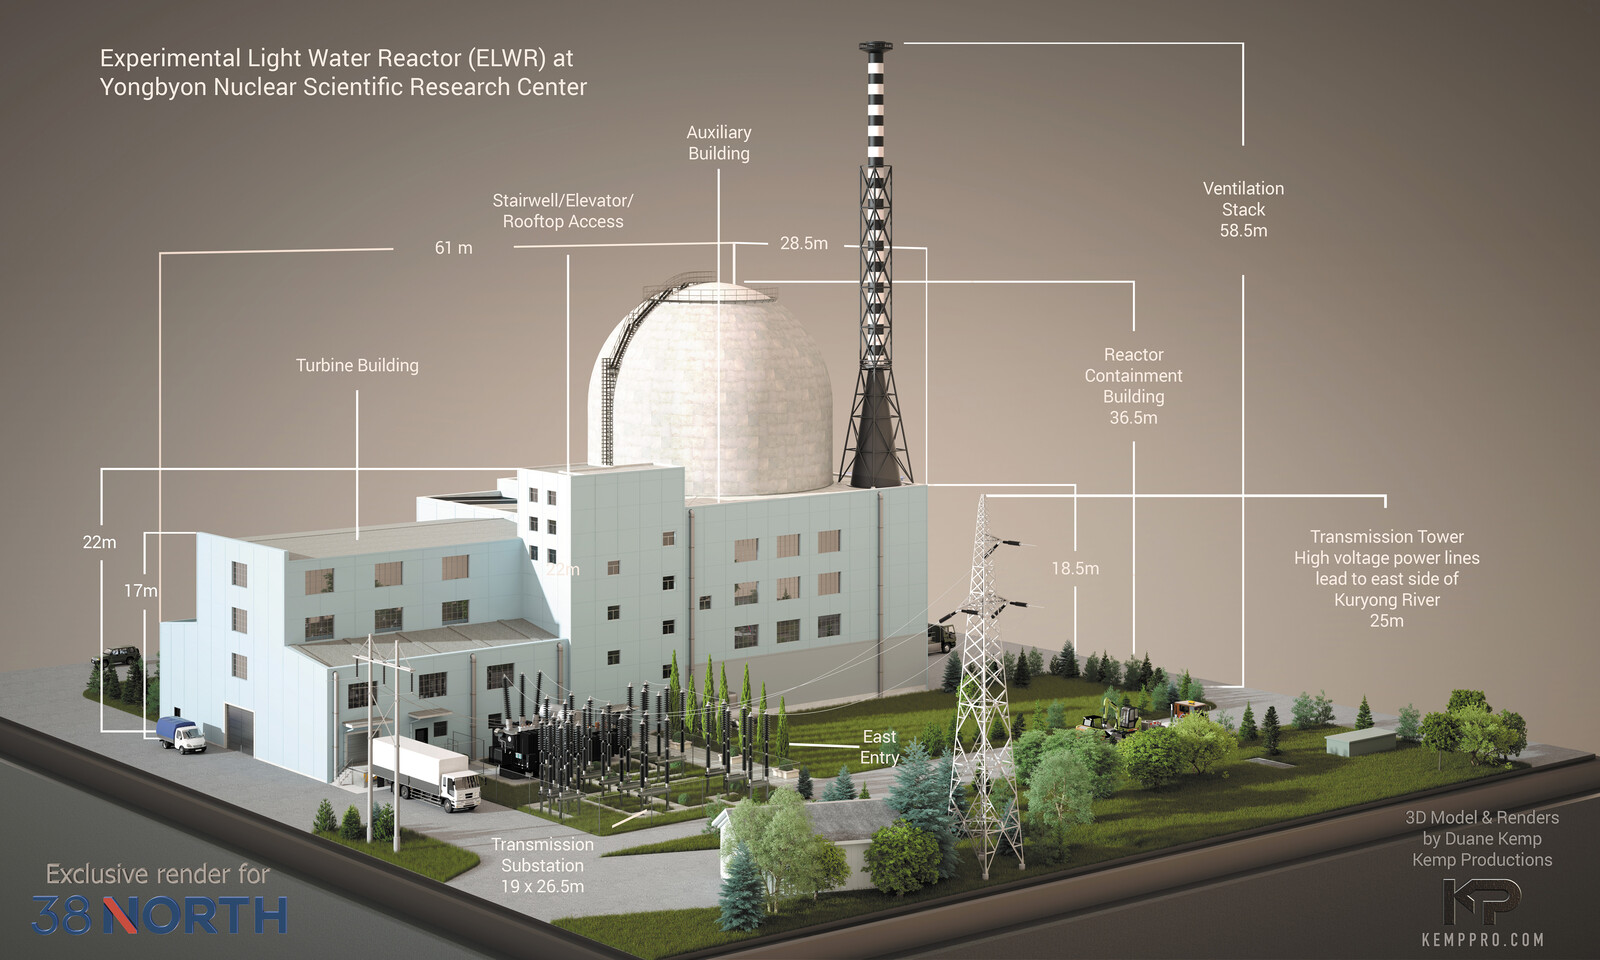 DPRK ELWR (Experimental Light Water Reactor) for 38 North's website presentation: https://www.38north.org/resources/2021/04/photo-galleries/yongbyon-experimental-light-water-reactor-render/ -Detail work 5b Display test-Scene 34 w-Measures Final 6666x4000-